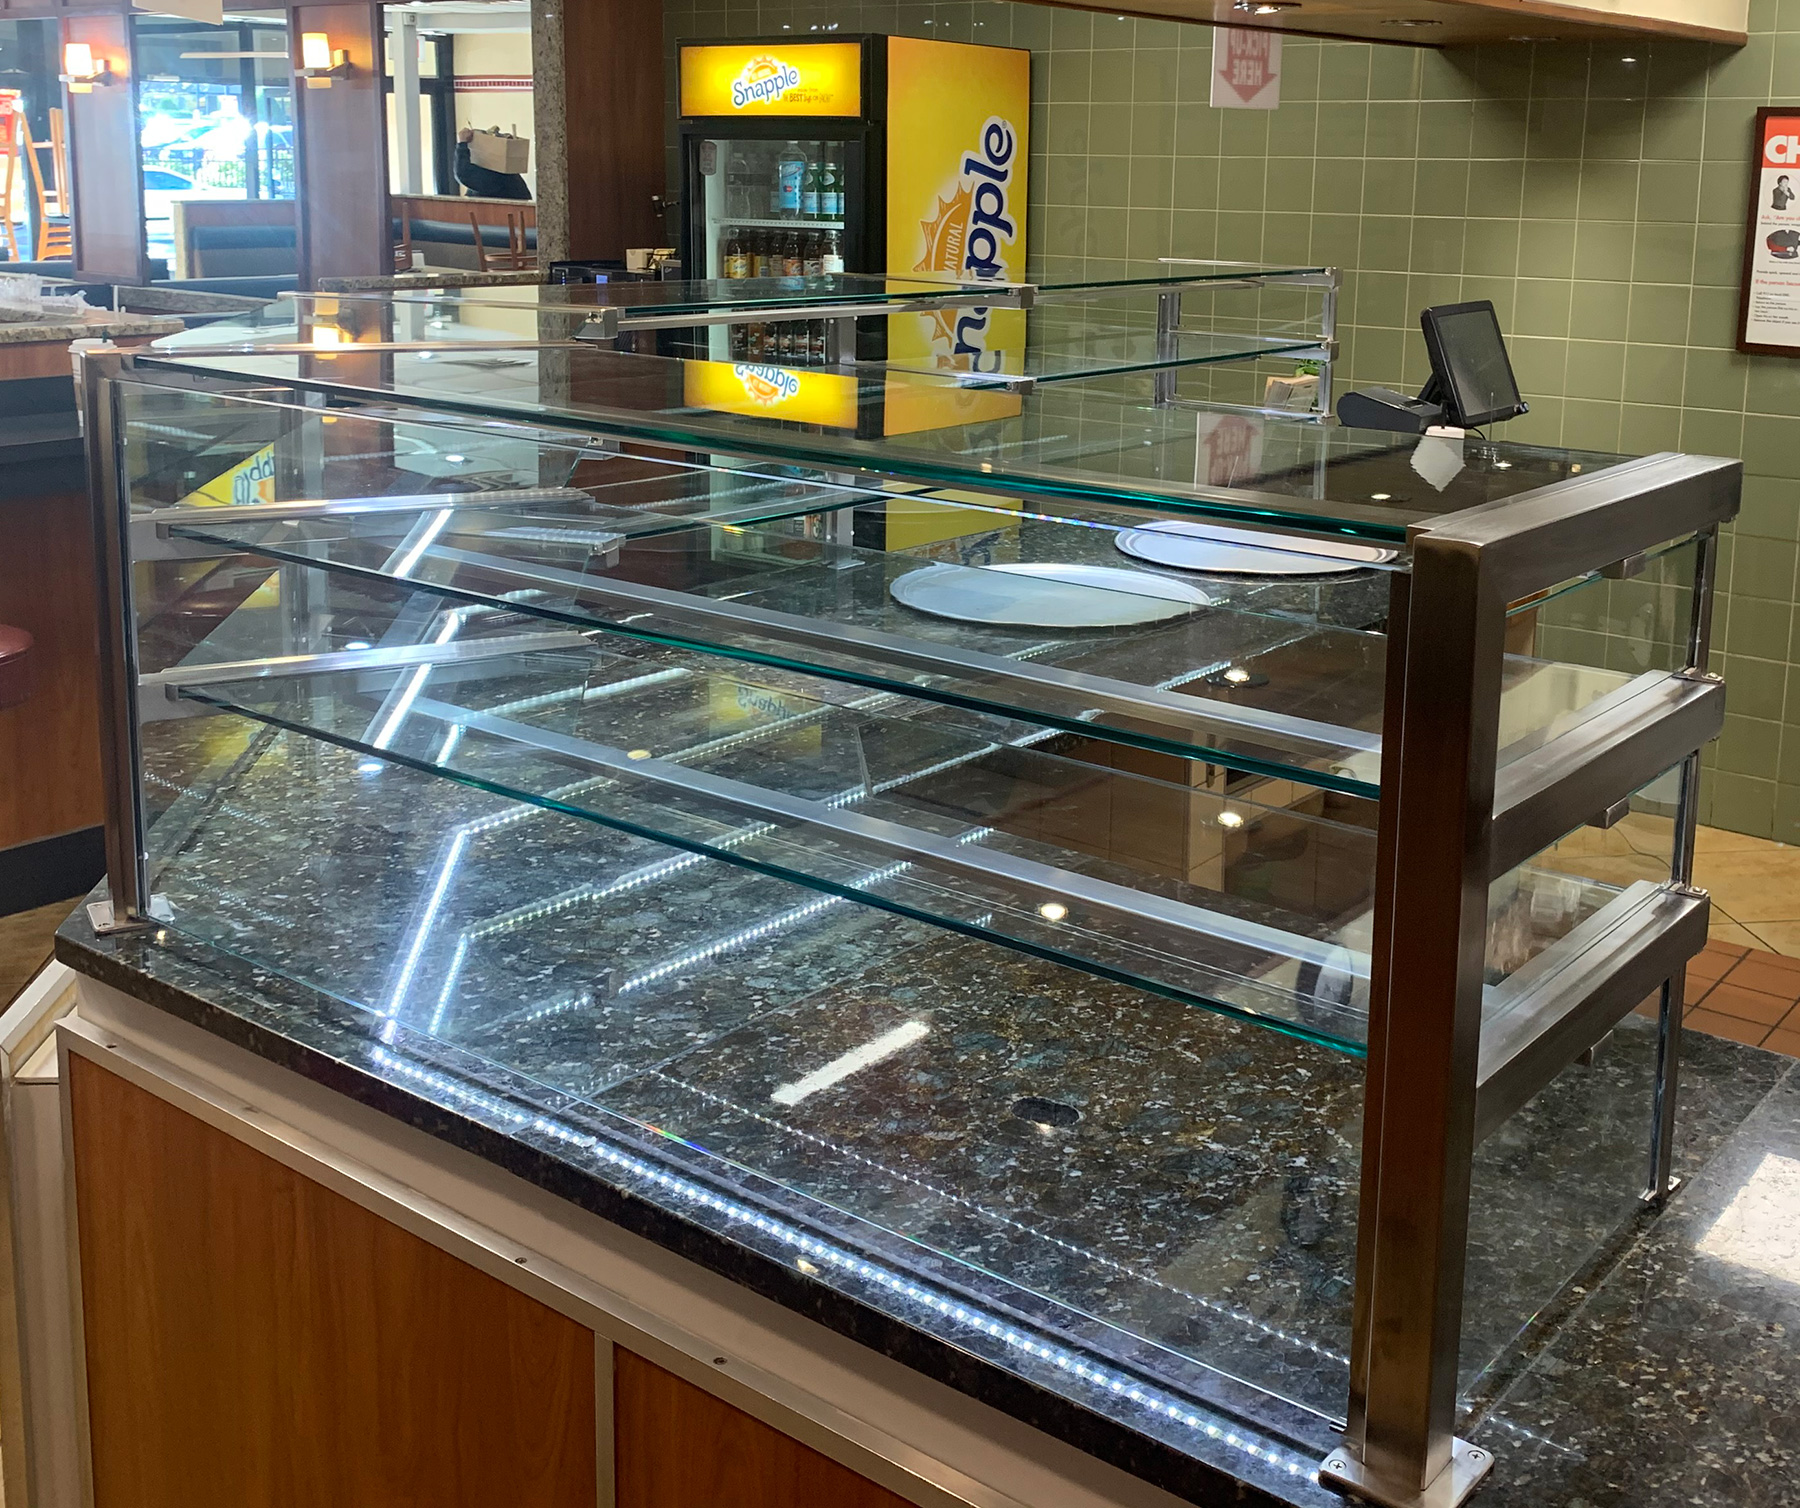 Satin Stainless Steel Food Shields with LED Lights | Rosa's Pizza, Great Neck, NY